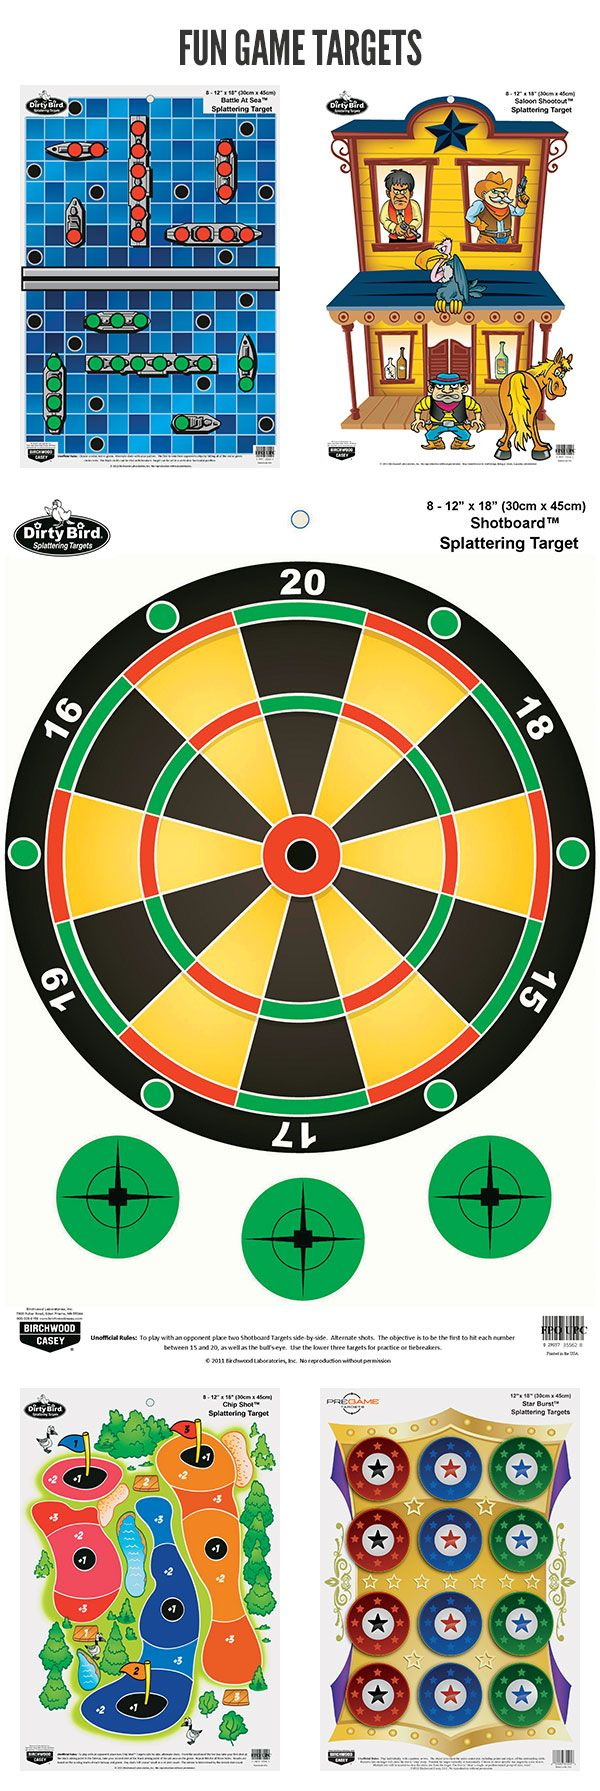 Get the kids target practicing with these fun, family